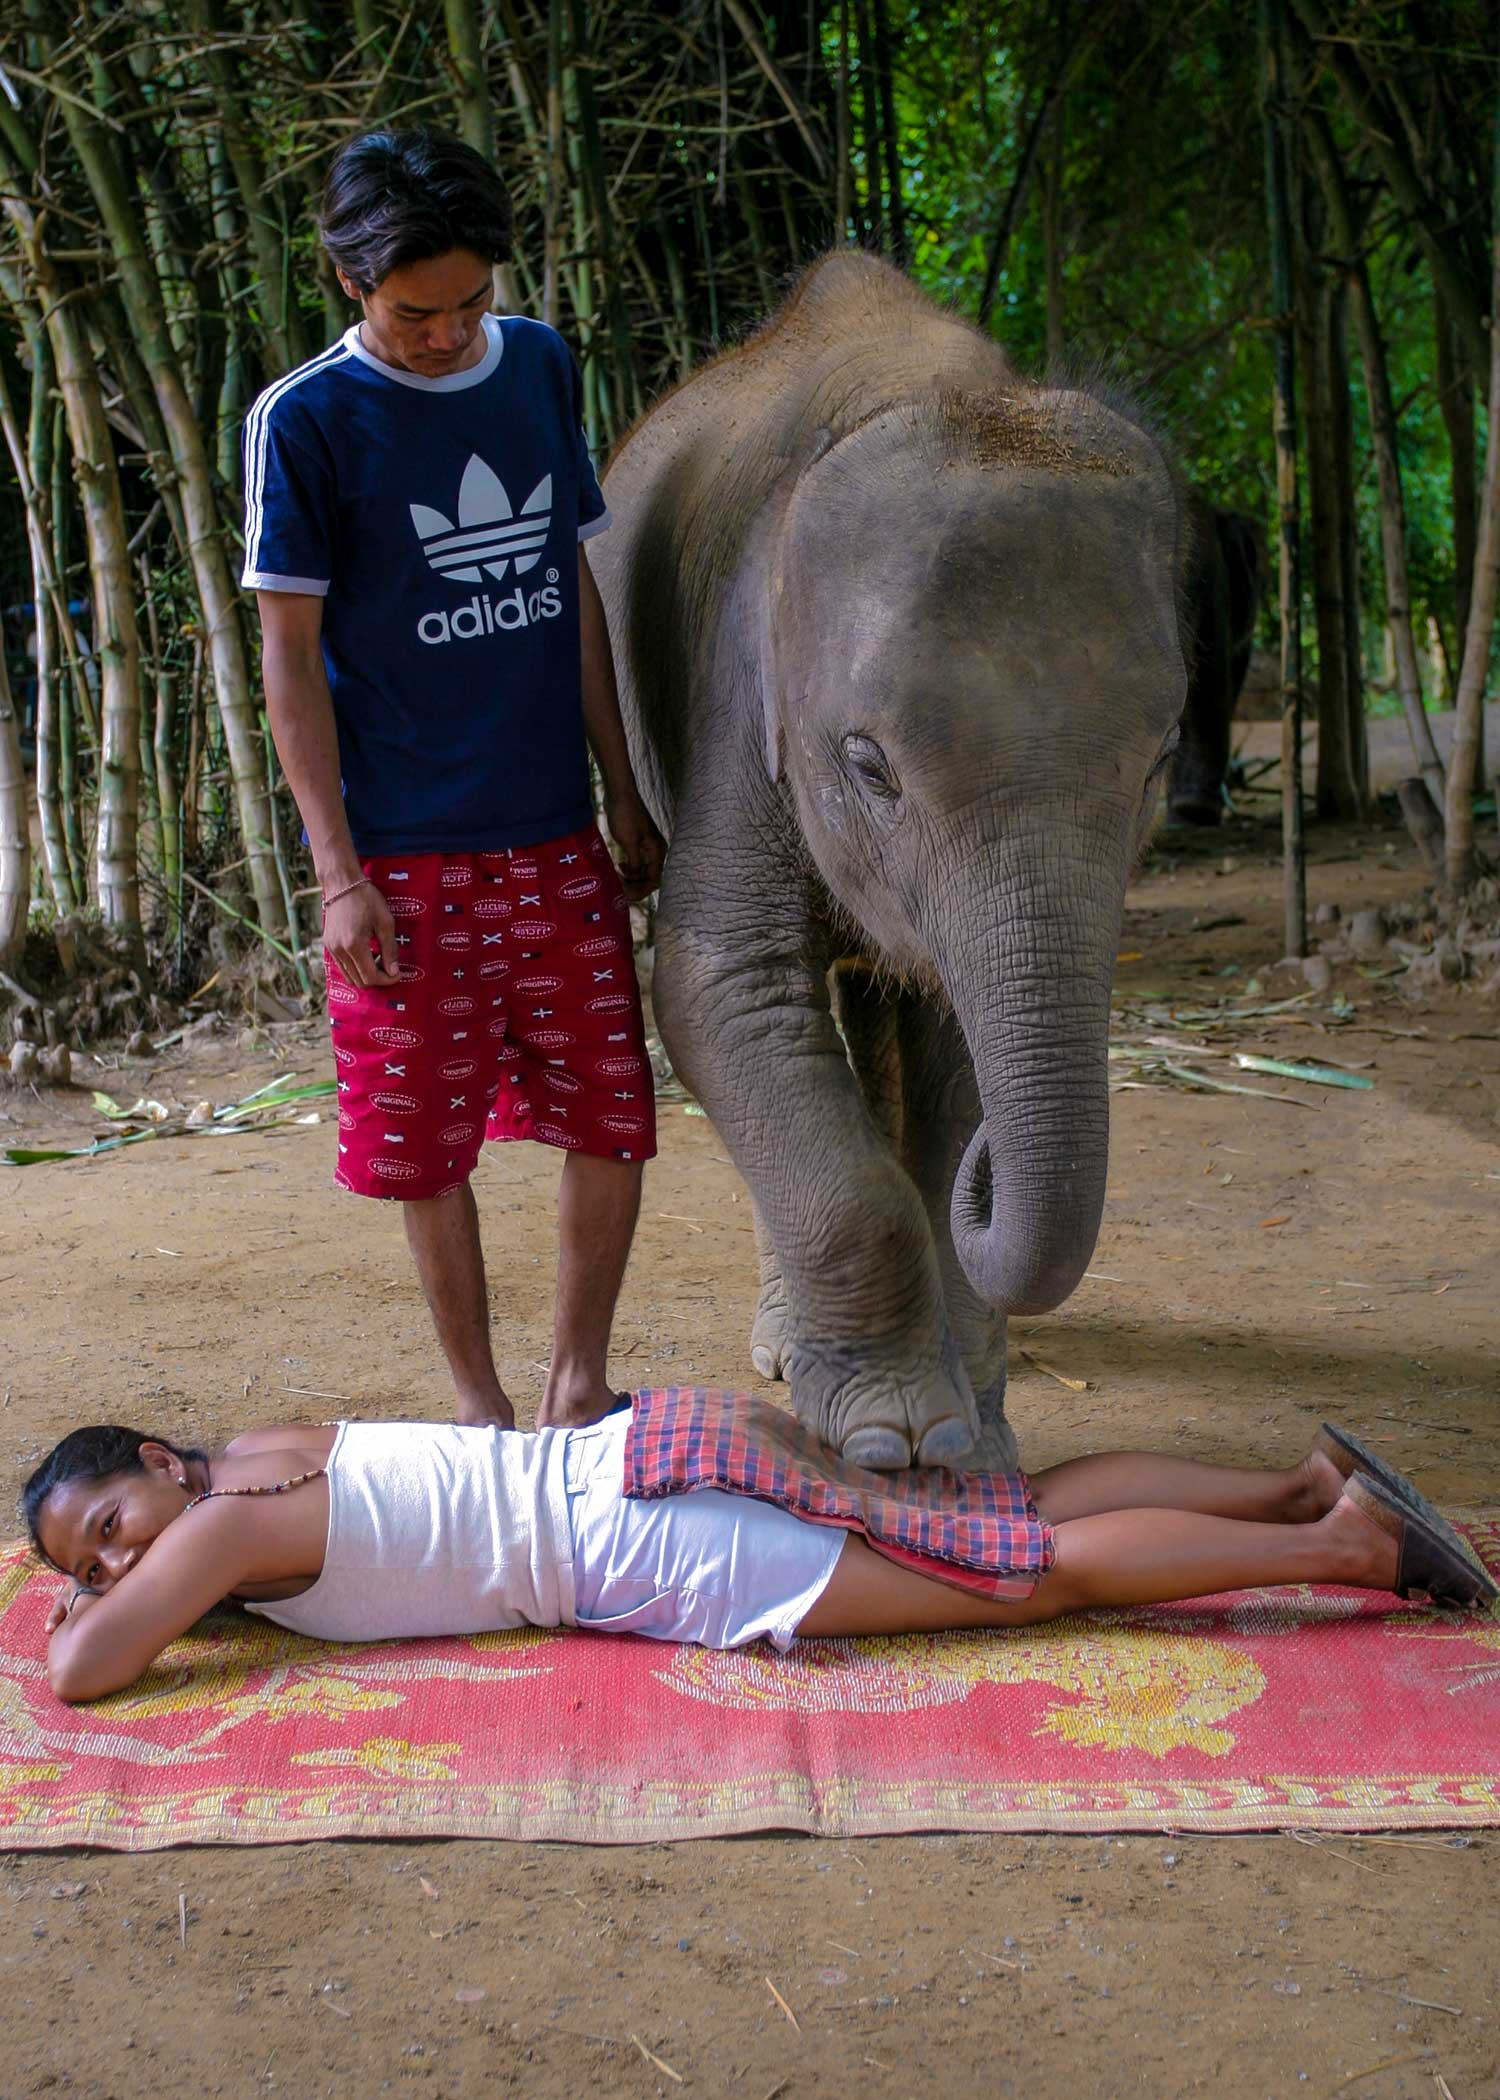 Deep tissue massage is being performed on Maya, a massage therapist at Massage Fort Myers, by an elephant